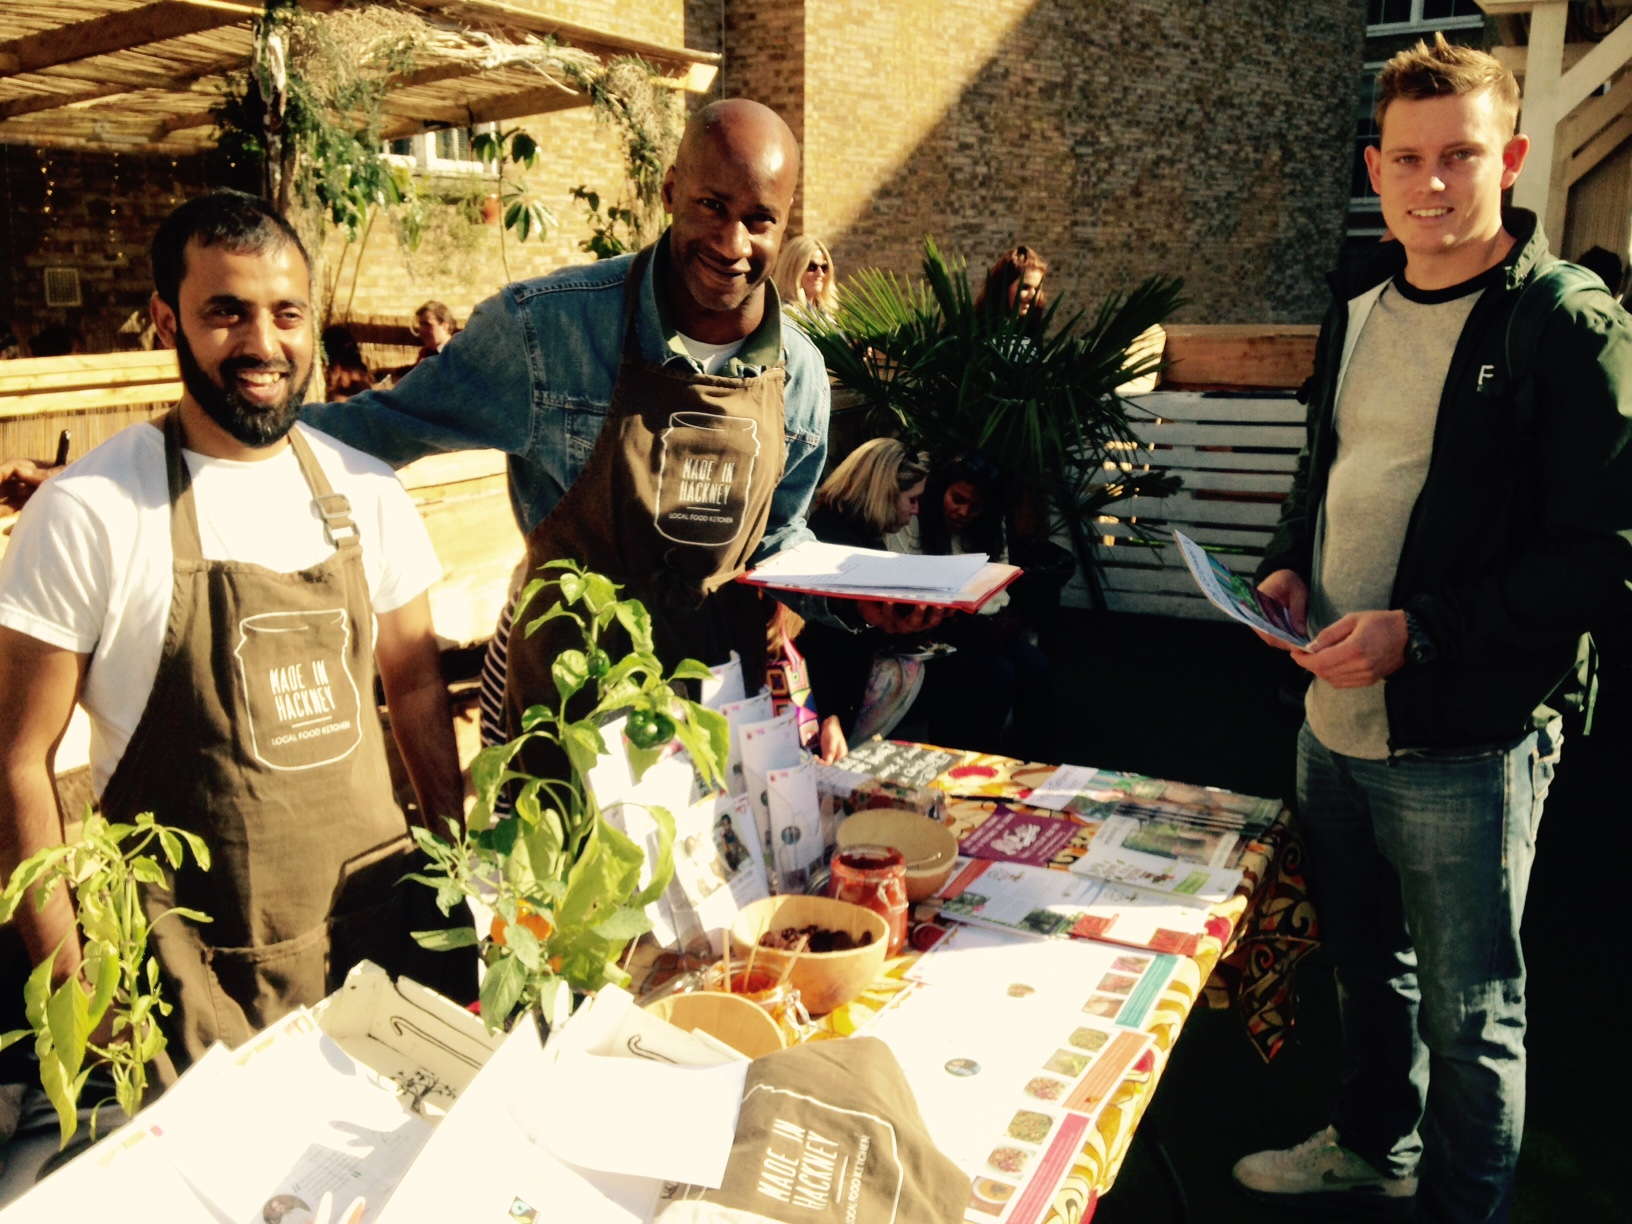 Volunteer with Made in Hackney